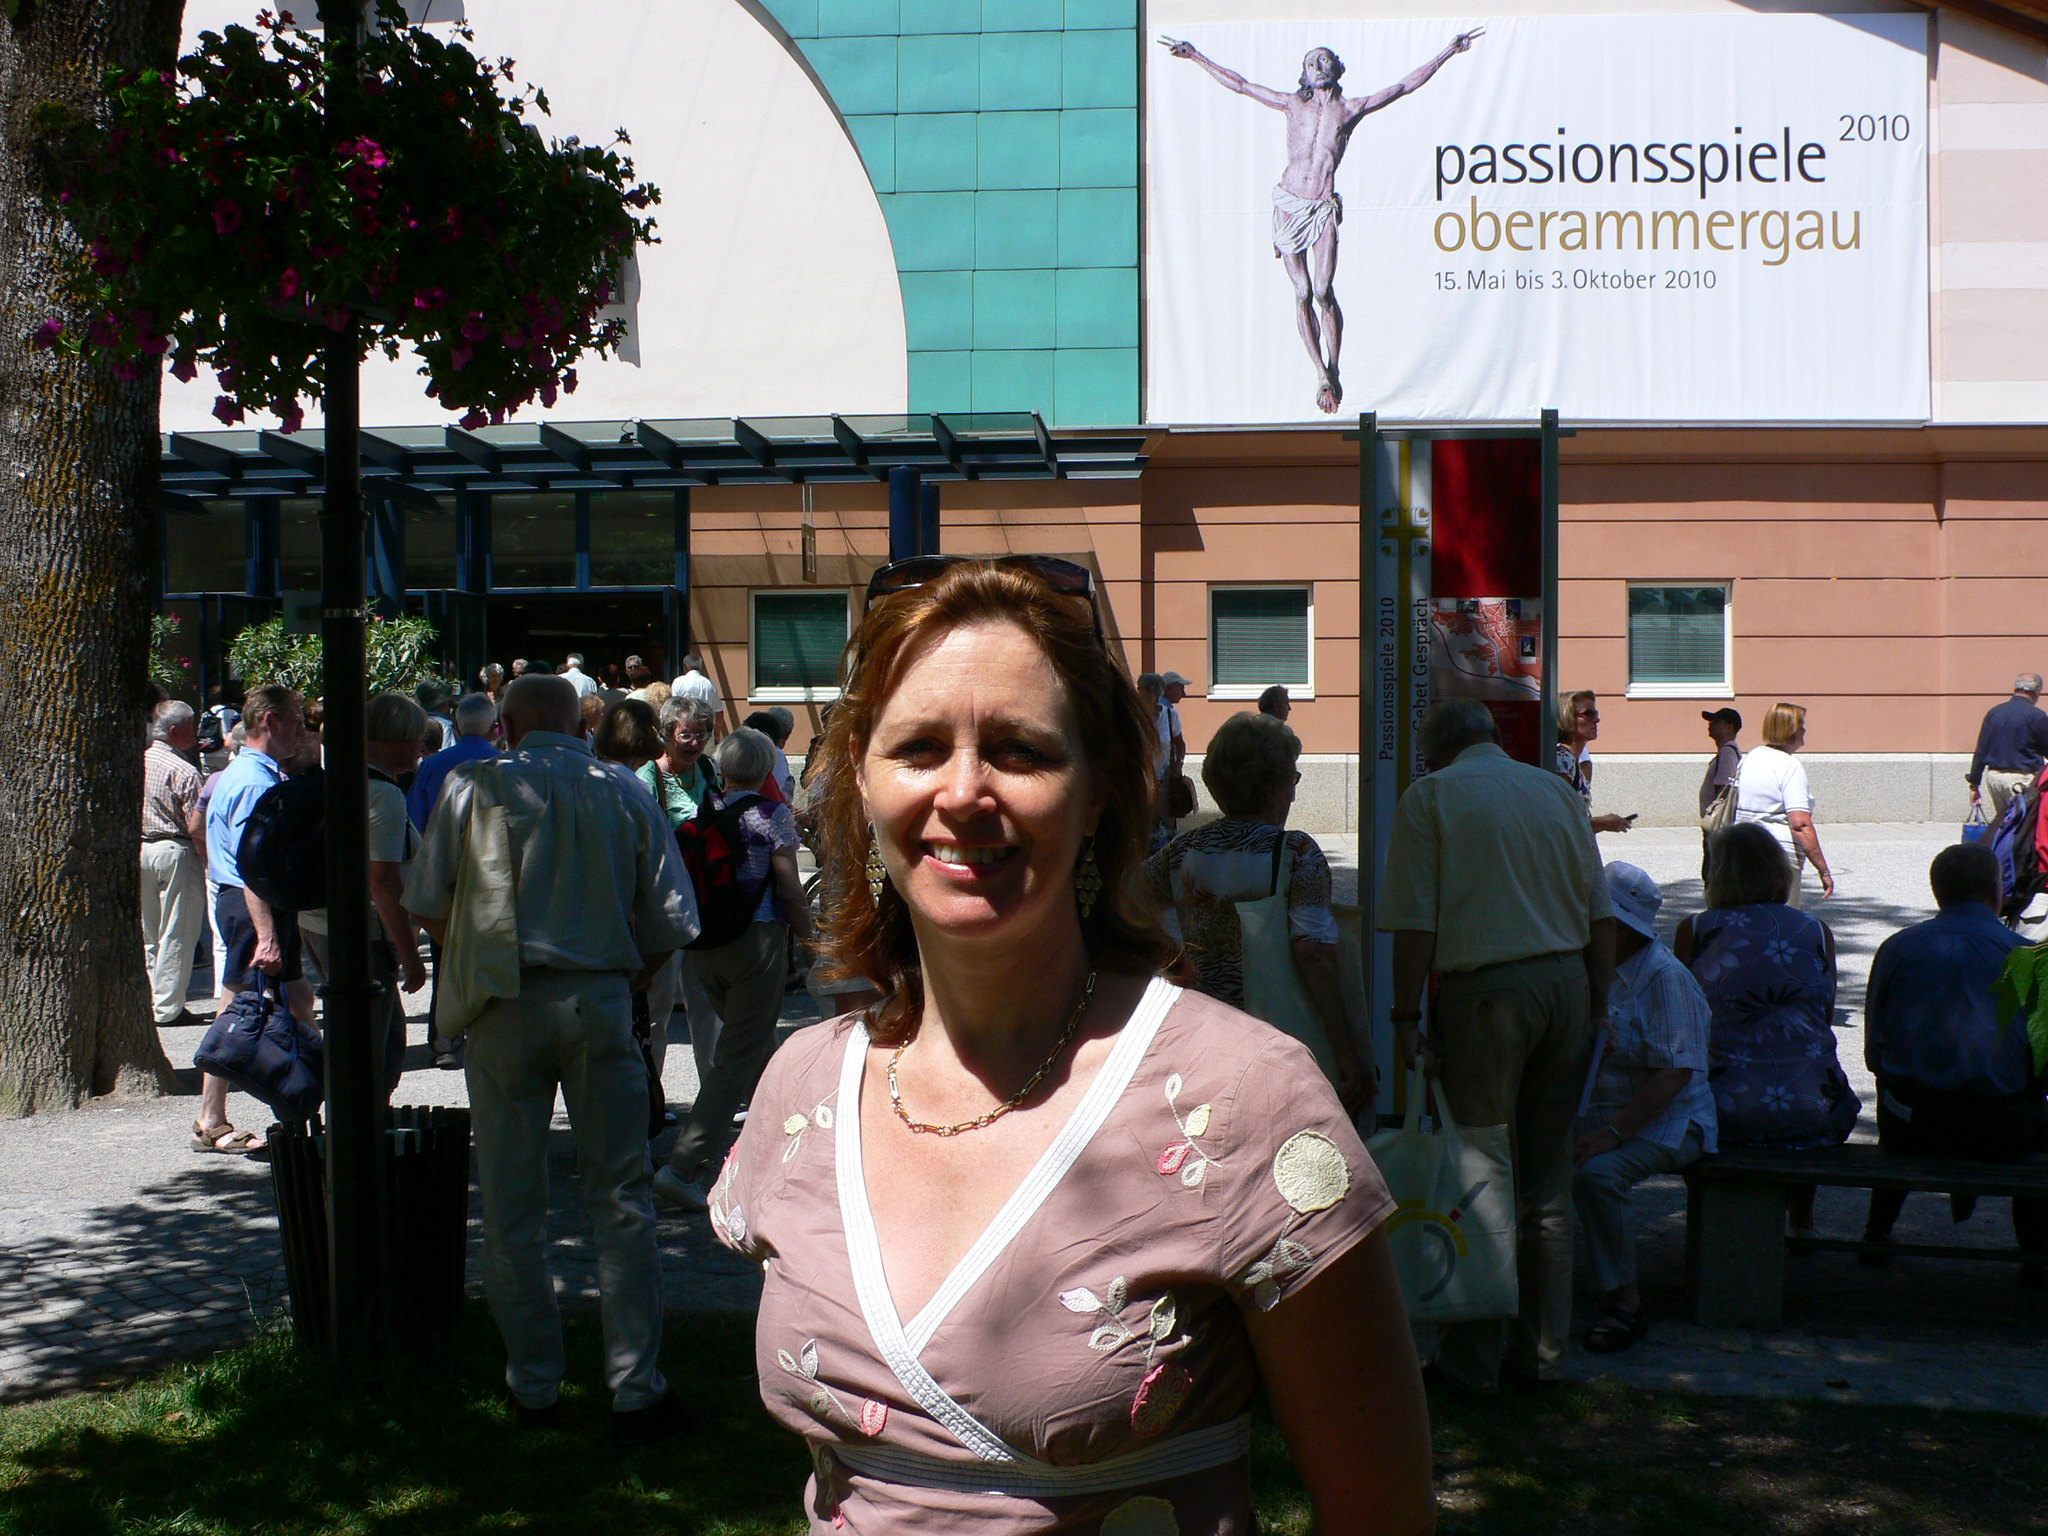 Visiting the Oberammergau Passion Play in 2010